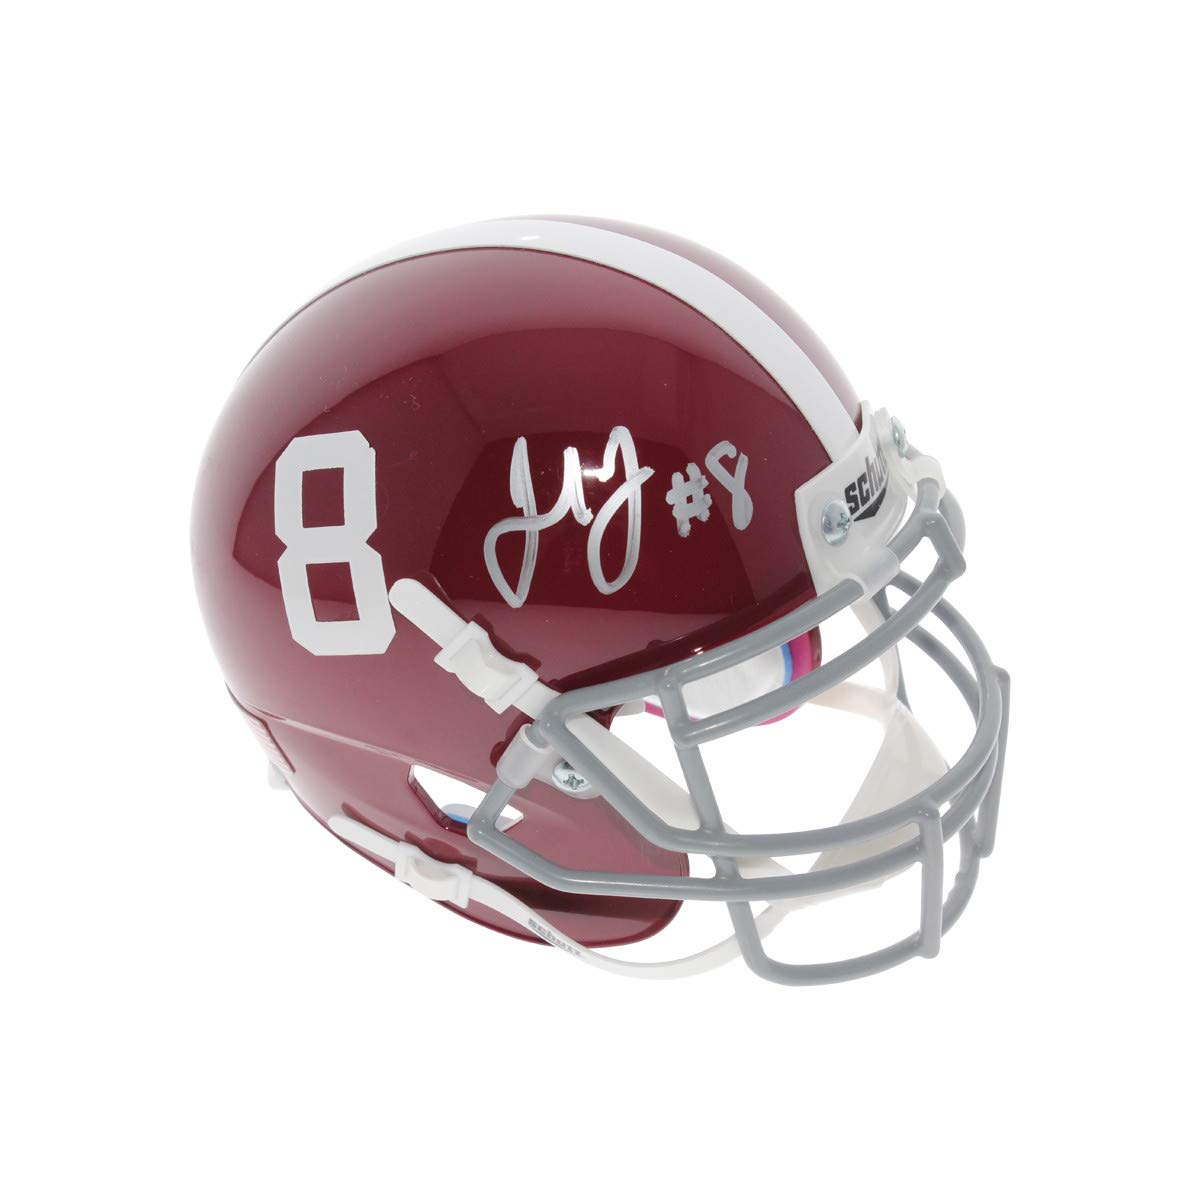 Julio Jones Autographed Signed Alabama Crimson Tide Schutt Mini Helmet - JSA Authentic